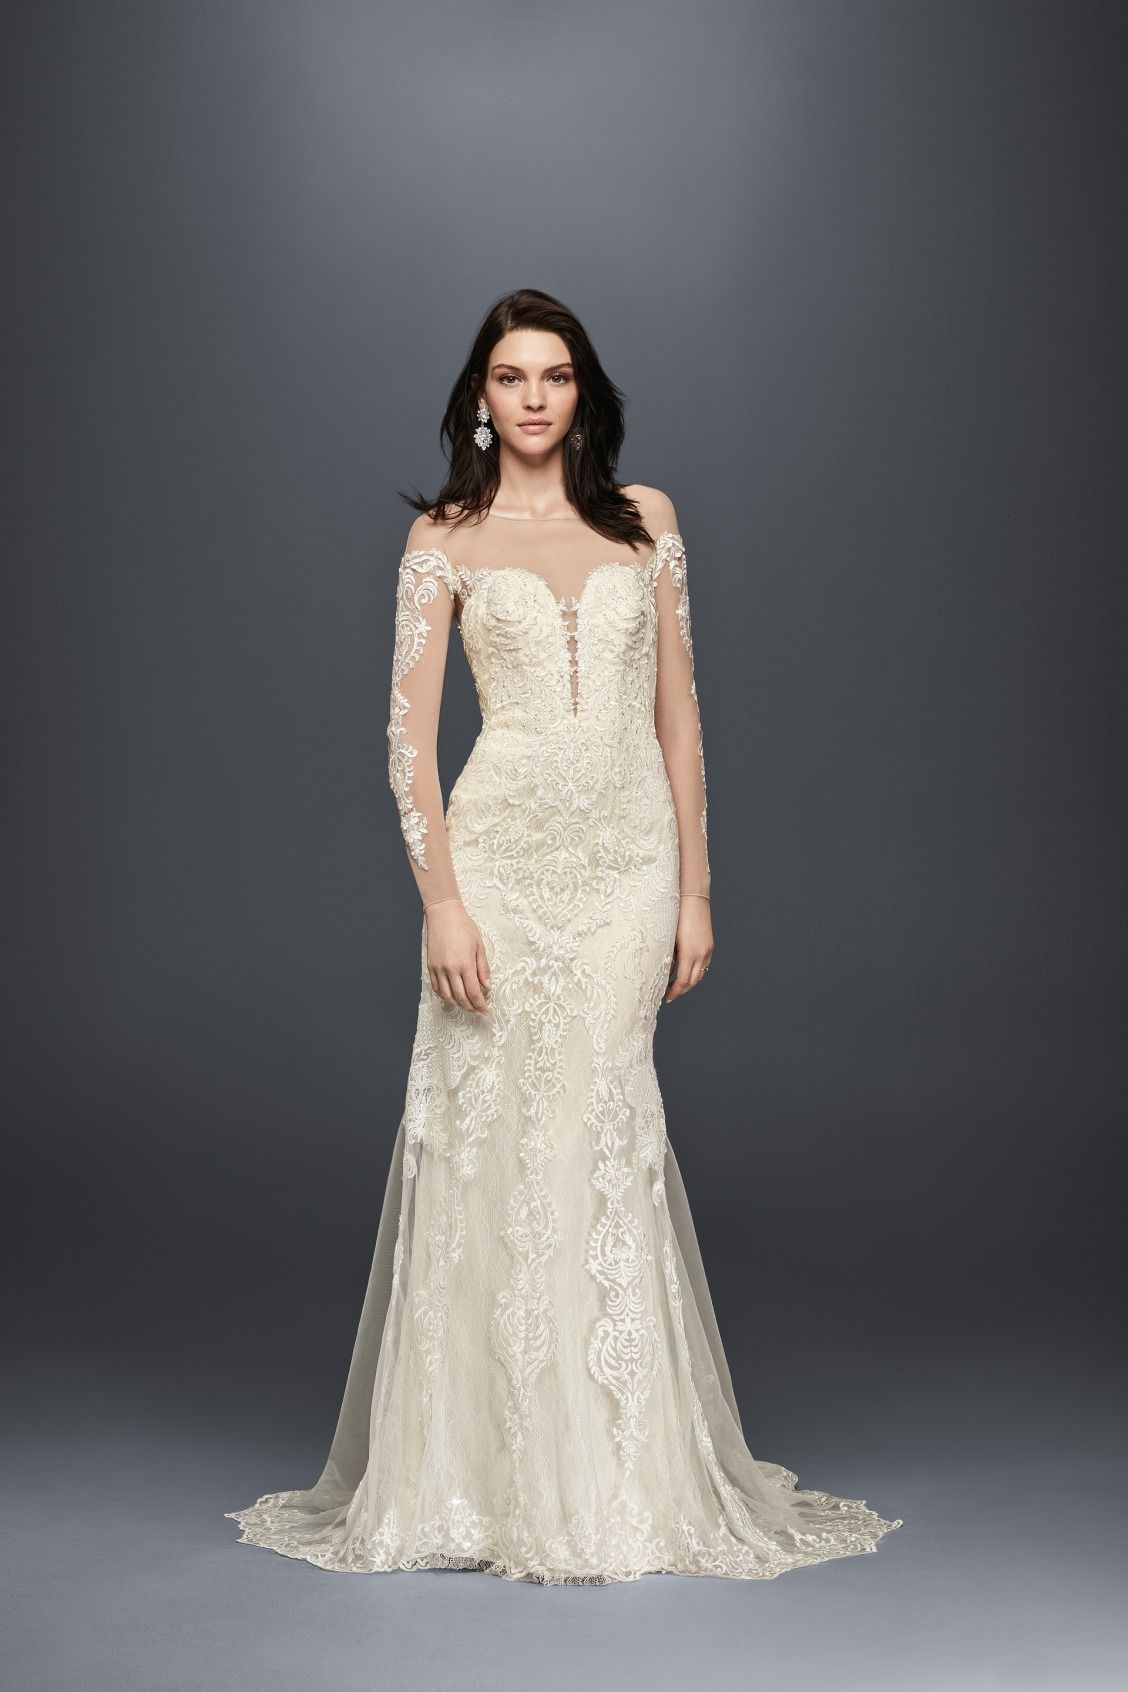 A slinky sheath wedding dress with illusion neckline and lace